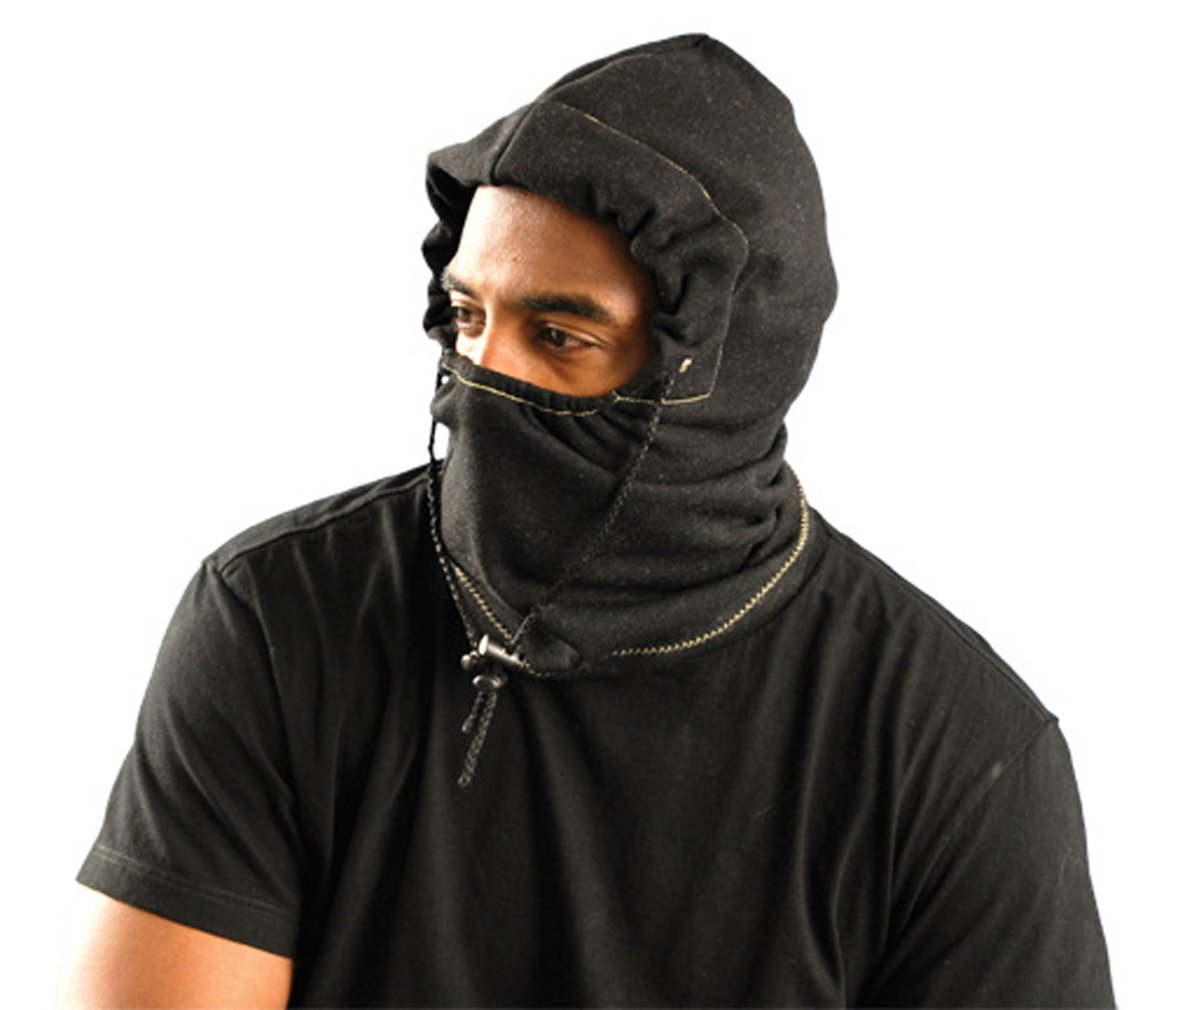 Stay Warm - PREMMIUM Flame Resistant 3-in-1 Fleece Balaclava - PACK OF 2 by Haynesville